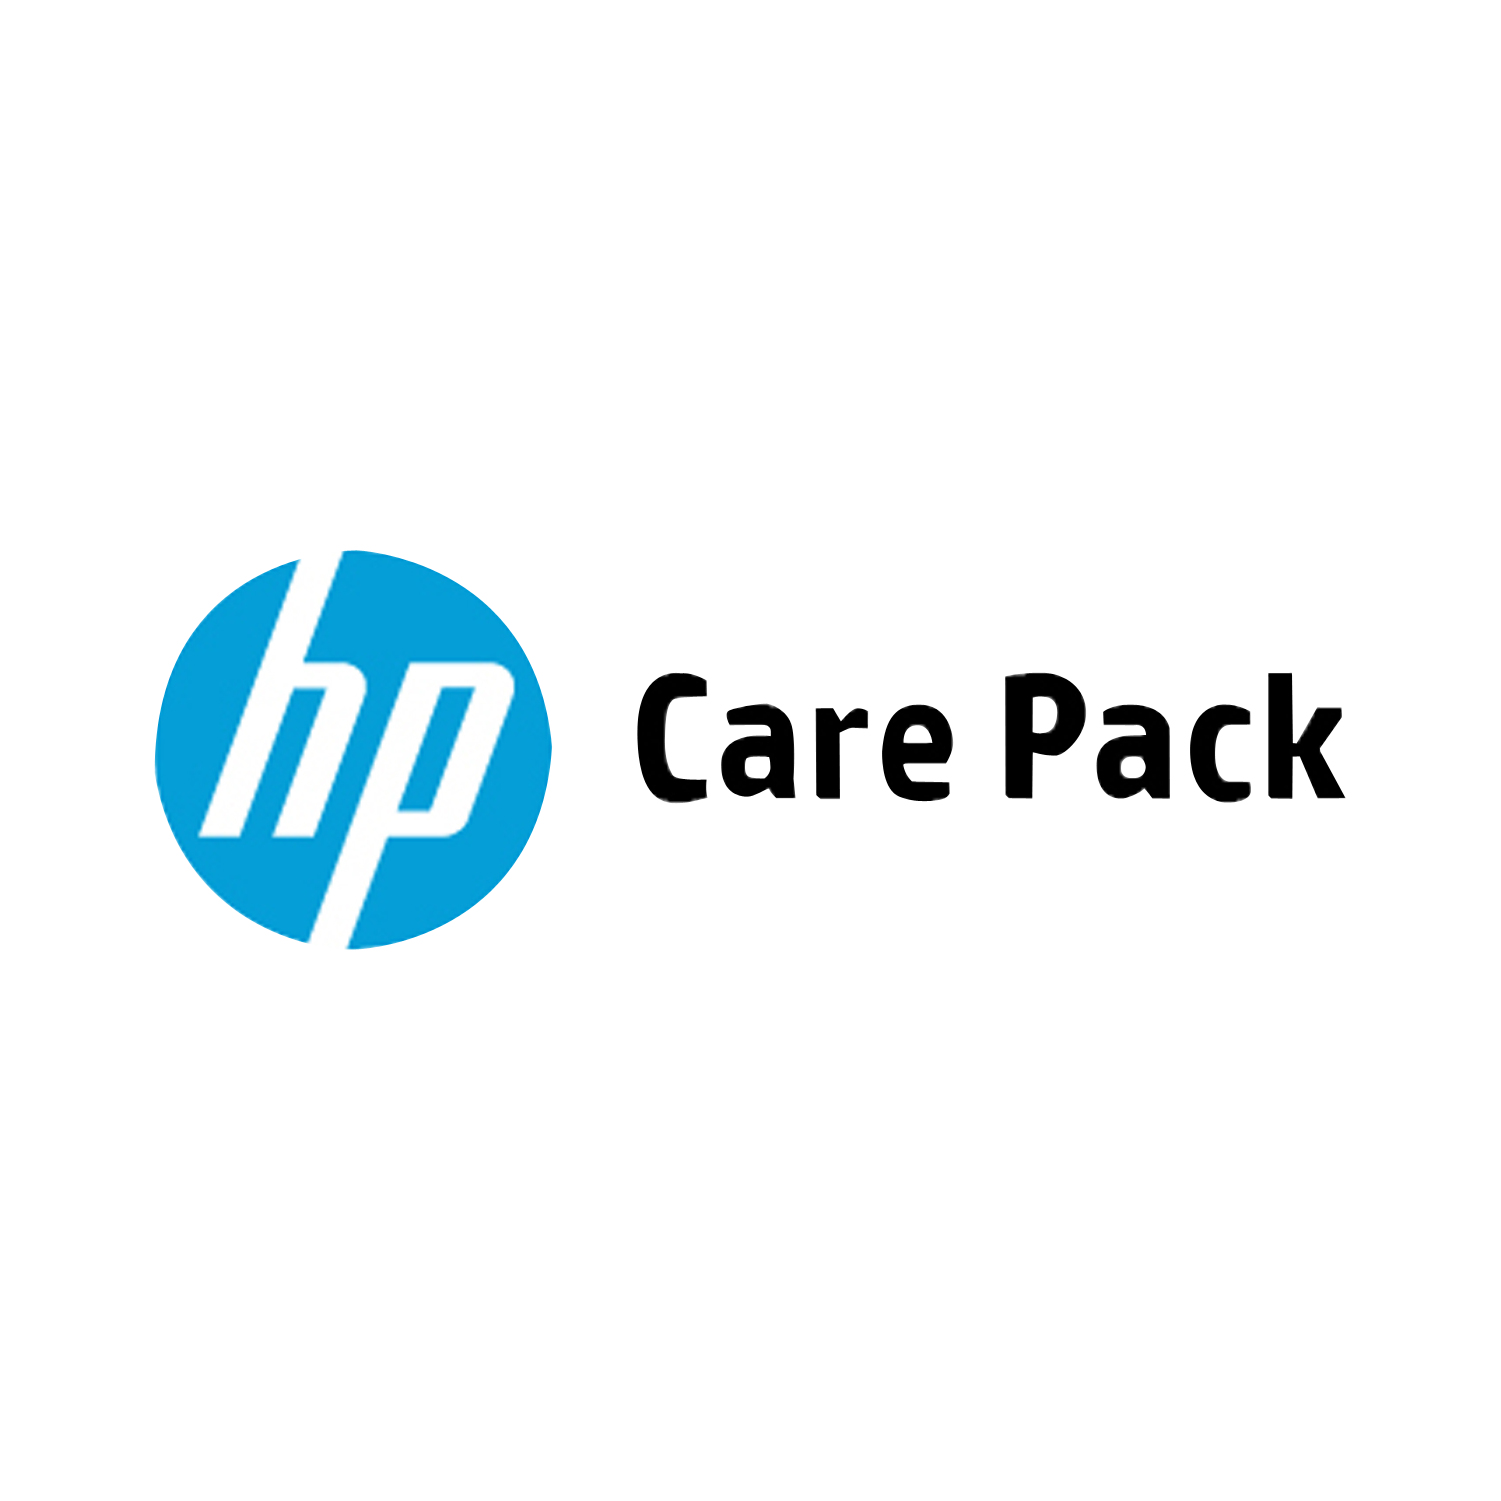 HP 5y 9x5 3CD CTR+DMR 95pct DT Only SVC